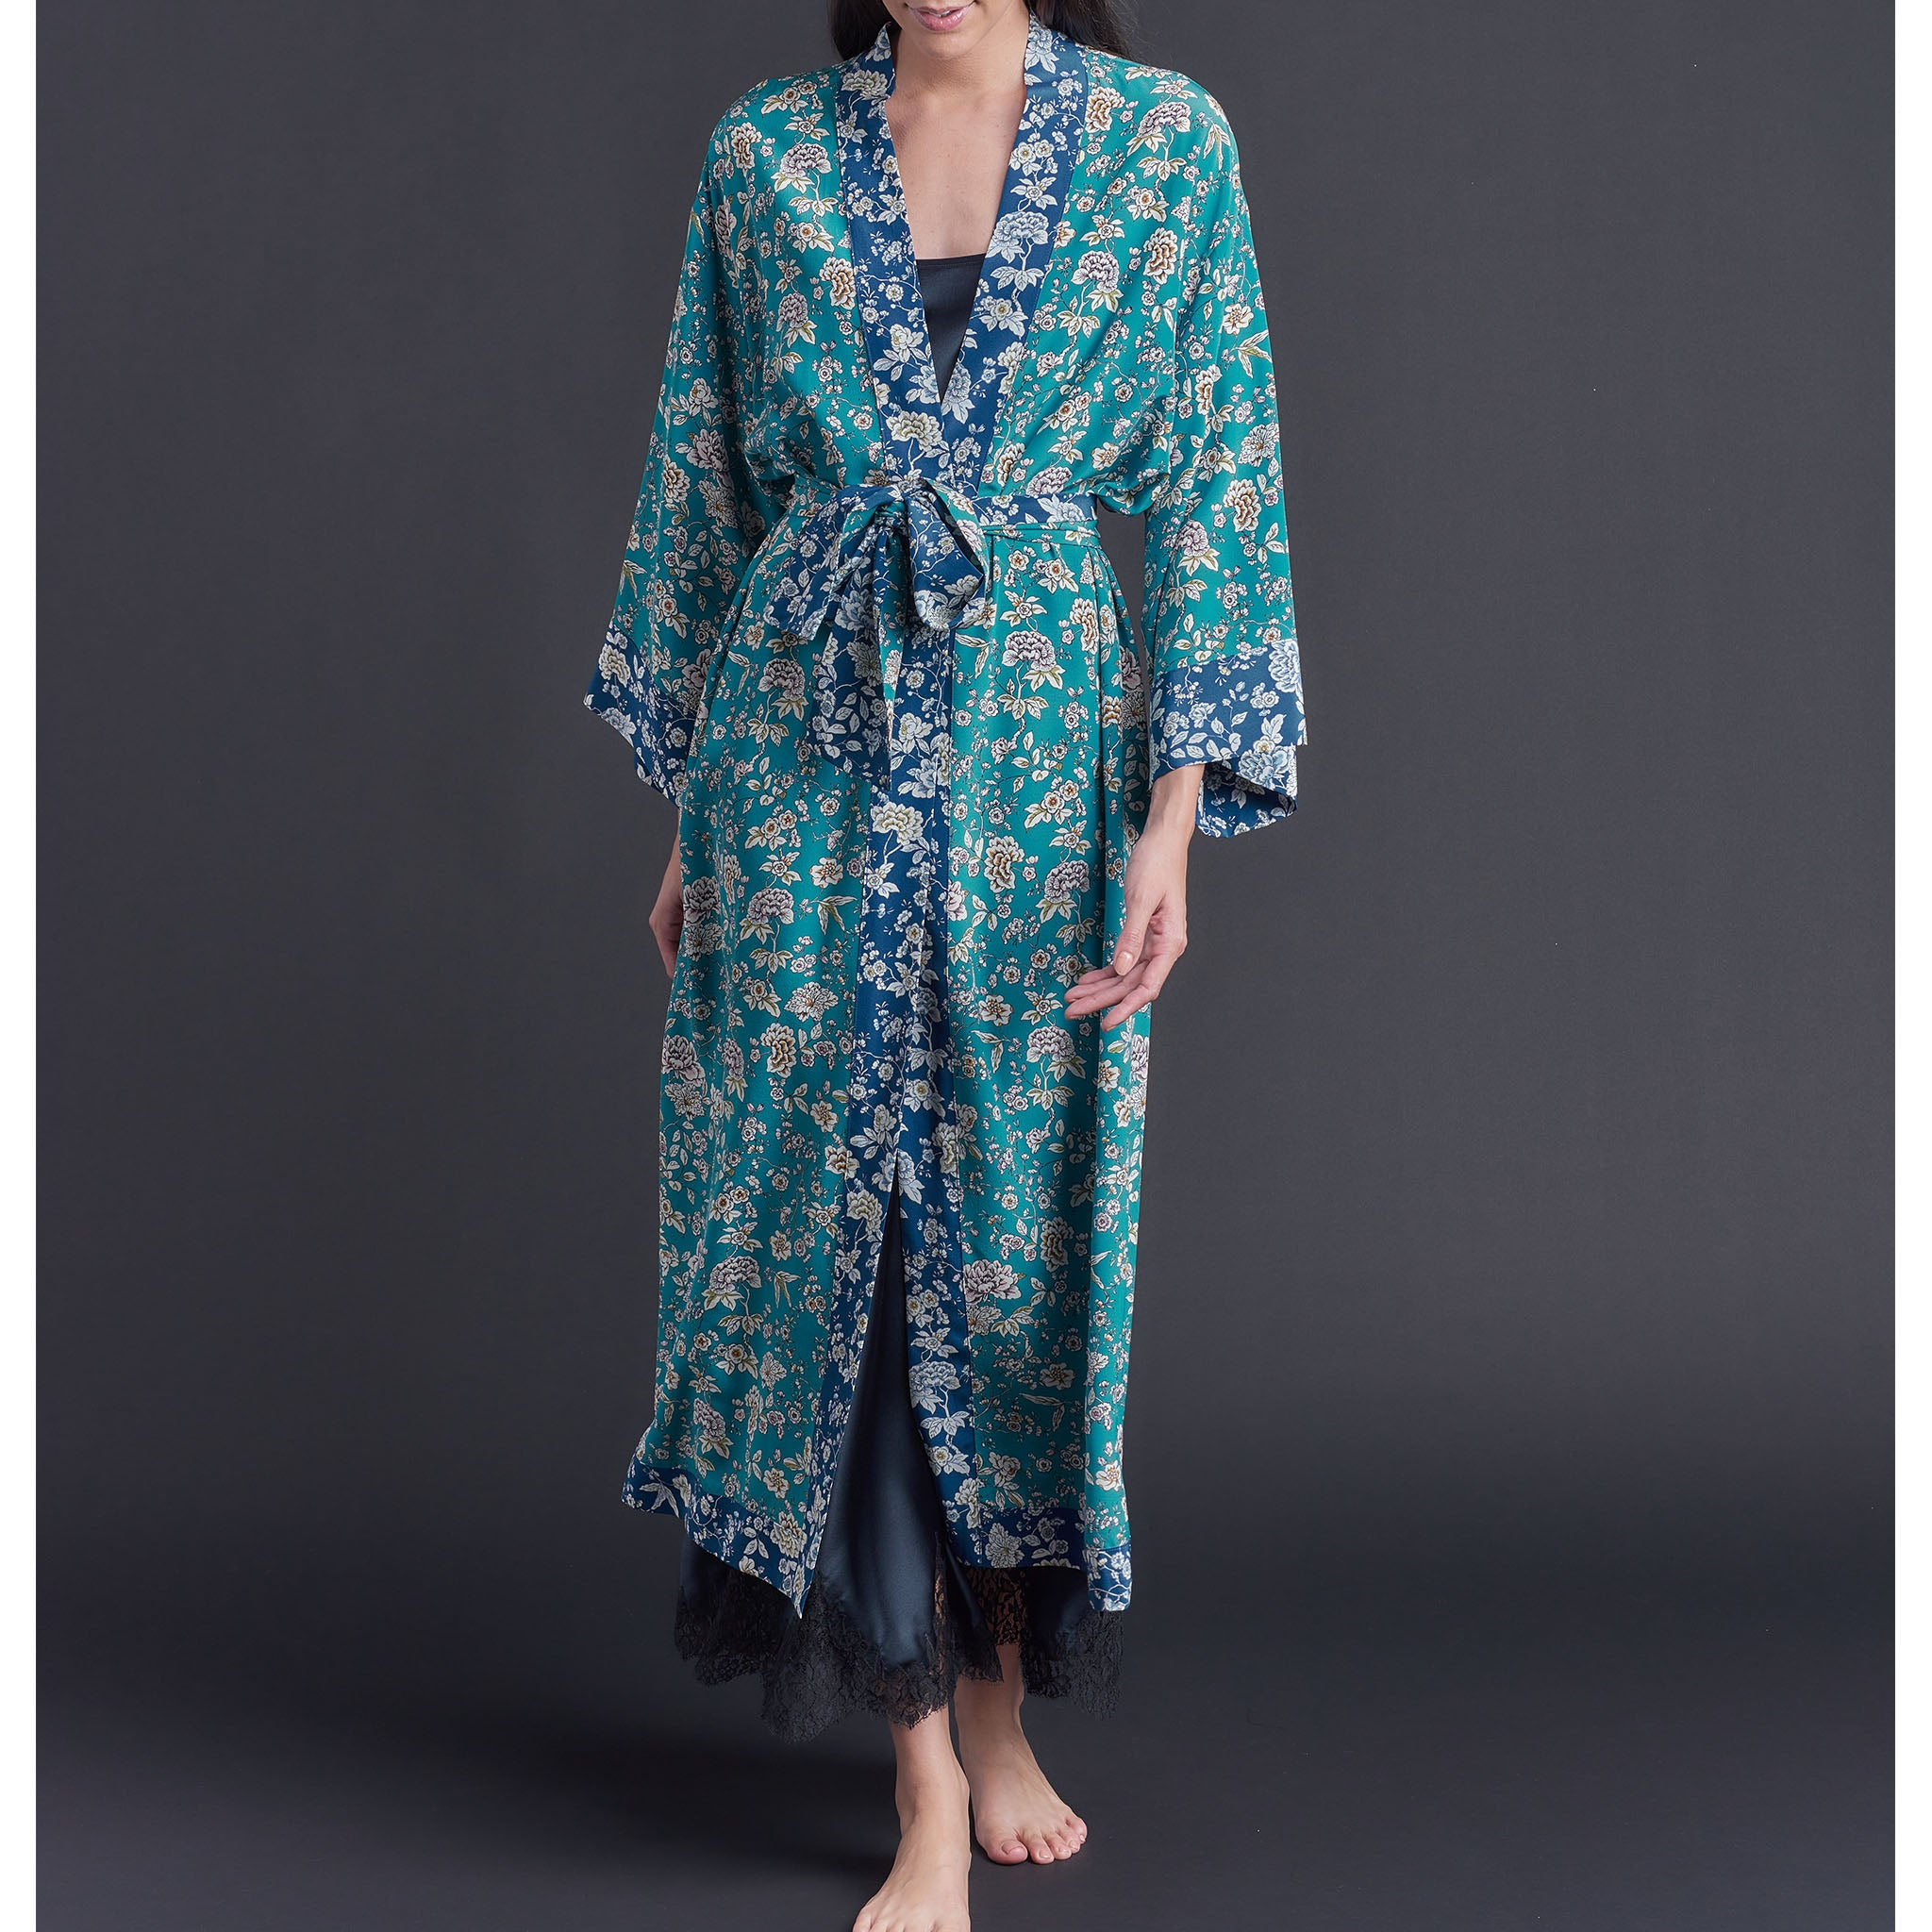 One of a Kind Asteria Kimono Robe in Turquoise Ceremony Liberty of London Print Silk Crepe De Chine